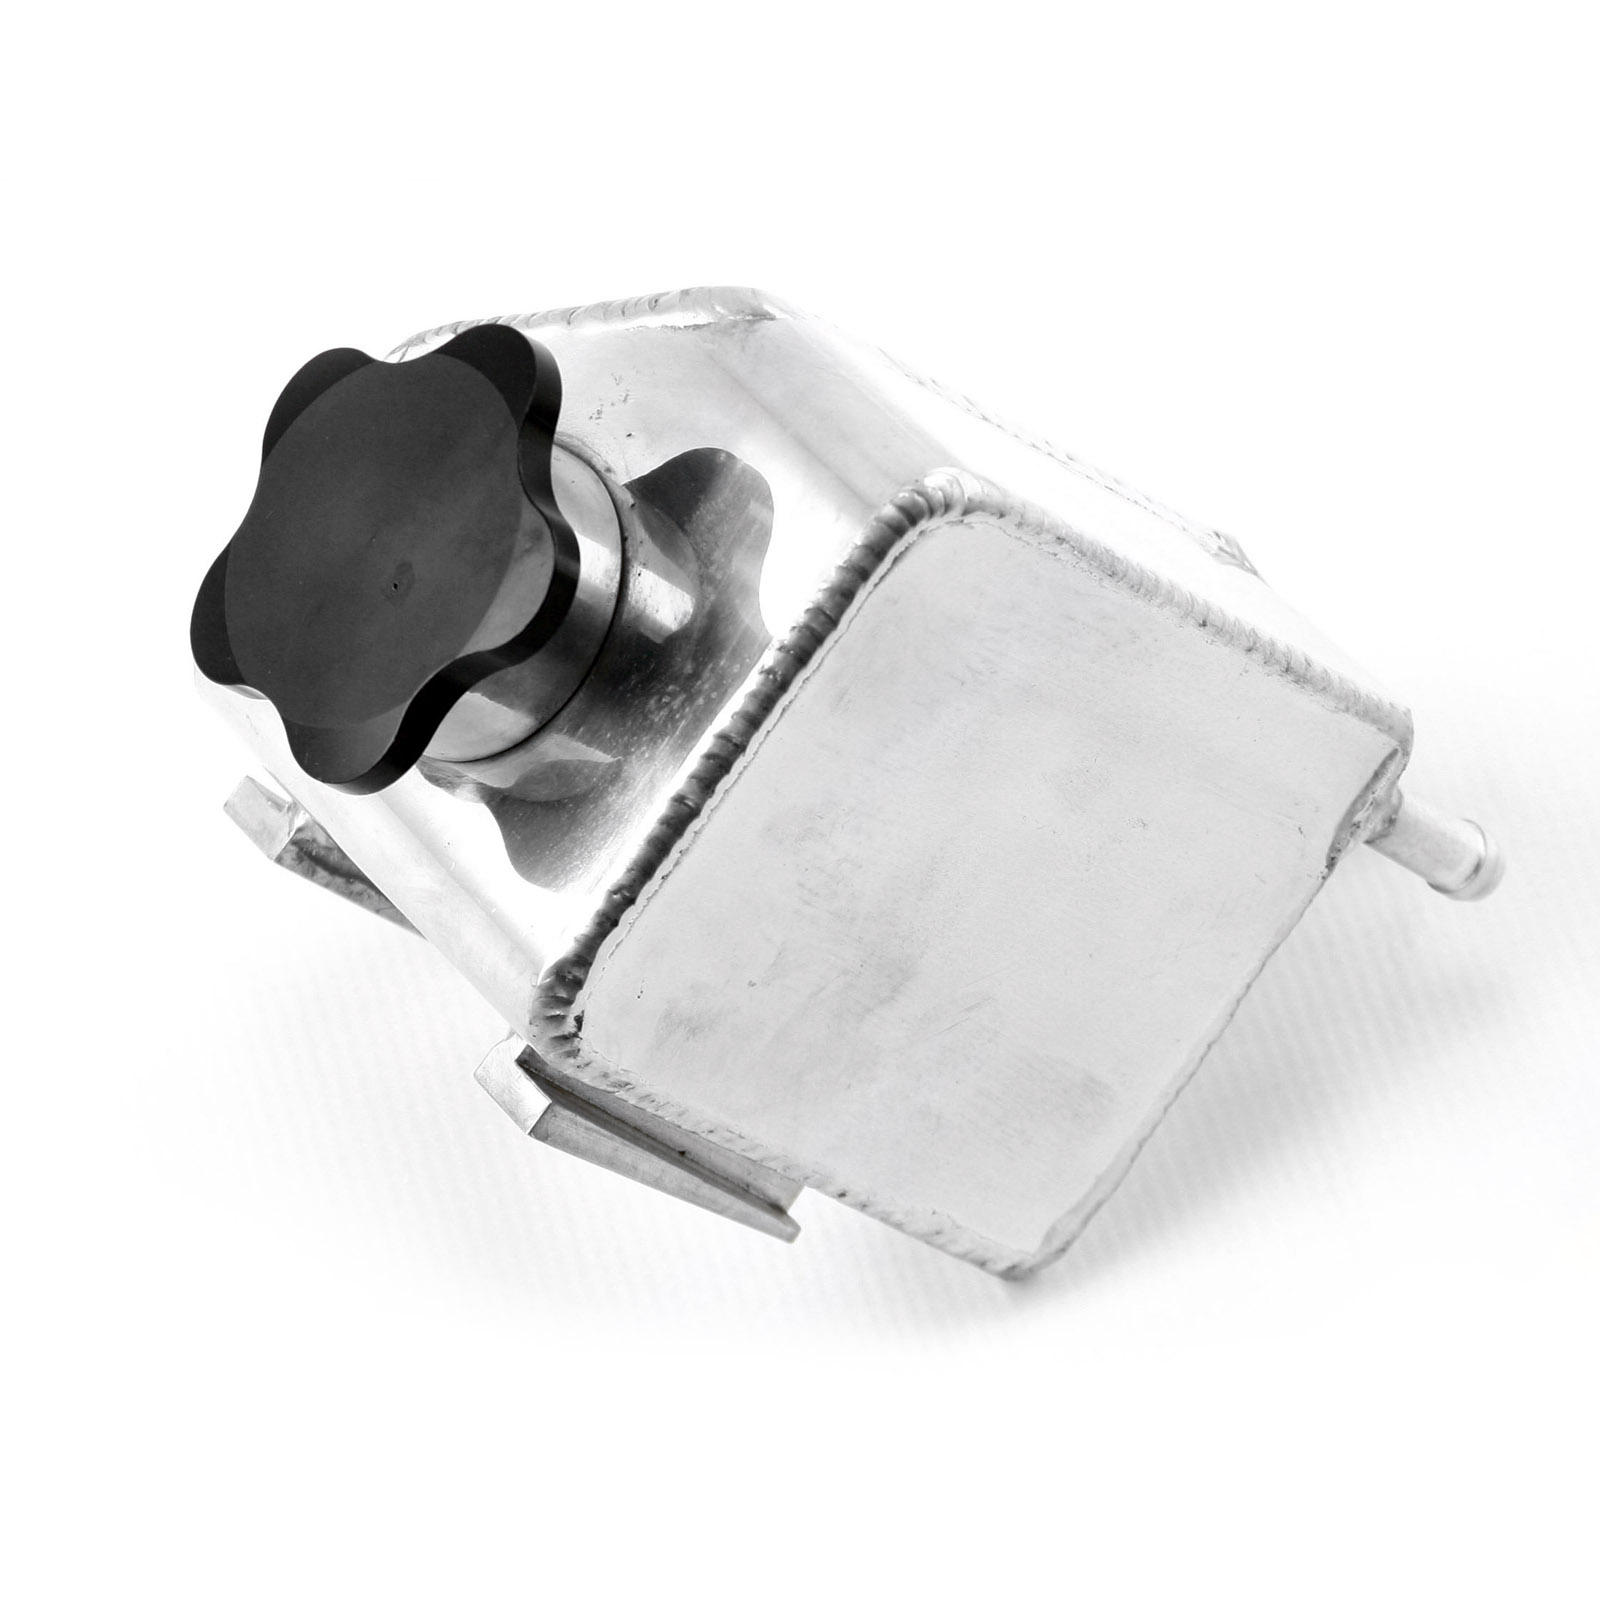 Dodge 2005-12 2.7L to 6.1L Fabricated Aluminum Power Steering Reservoir Polished